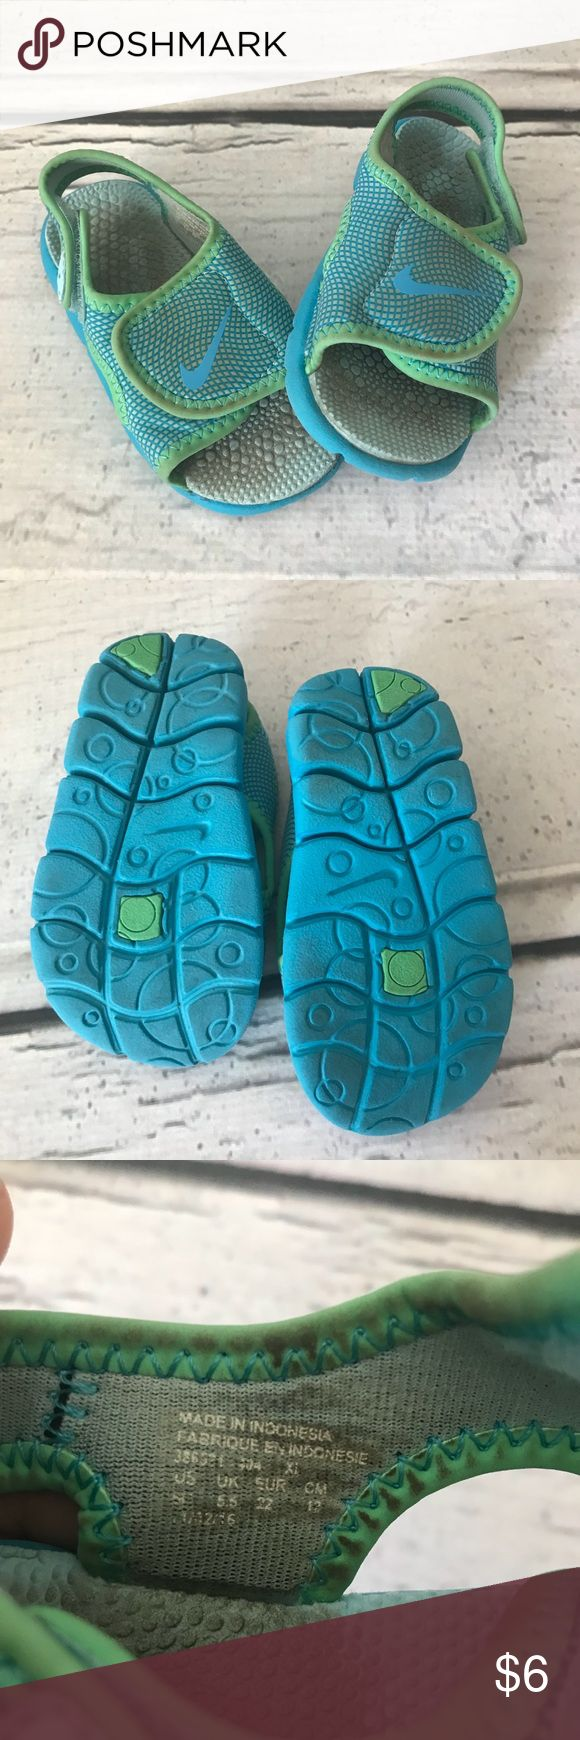 Nike Velcro Sandals Comfiest Sandals! Velcro across top and back strap for perfect fit. Some scuffing. Lots of adventures left in these! Smoke-free home. 6.5 toddler Nike Shoes Sandals & Flip Flops